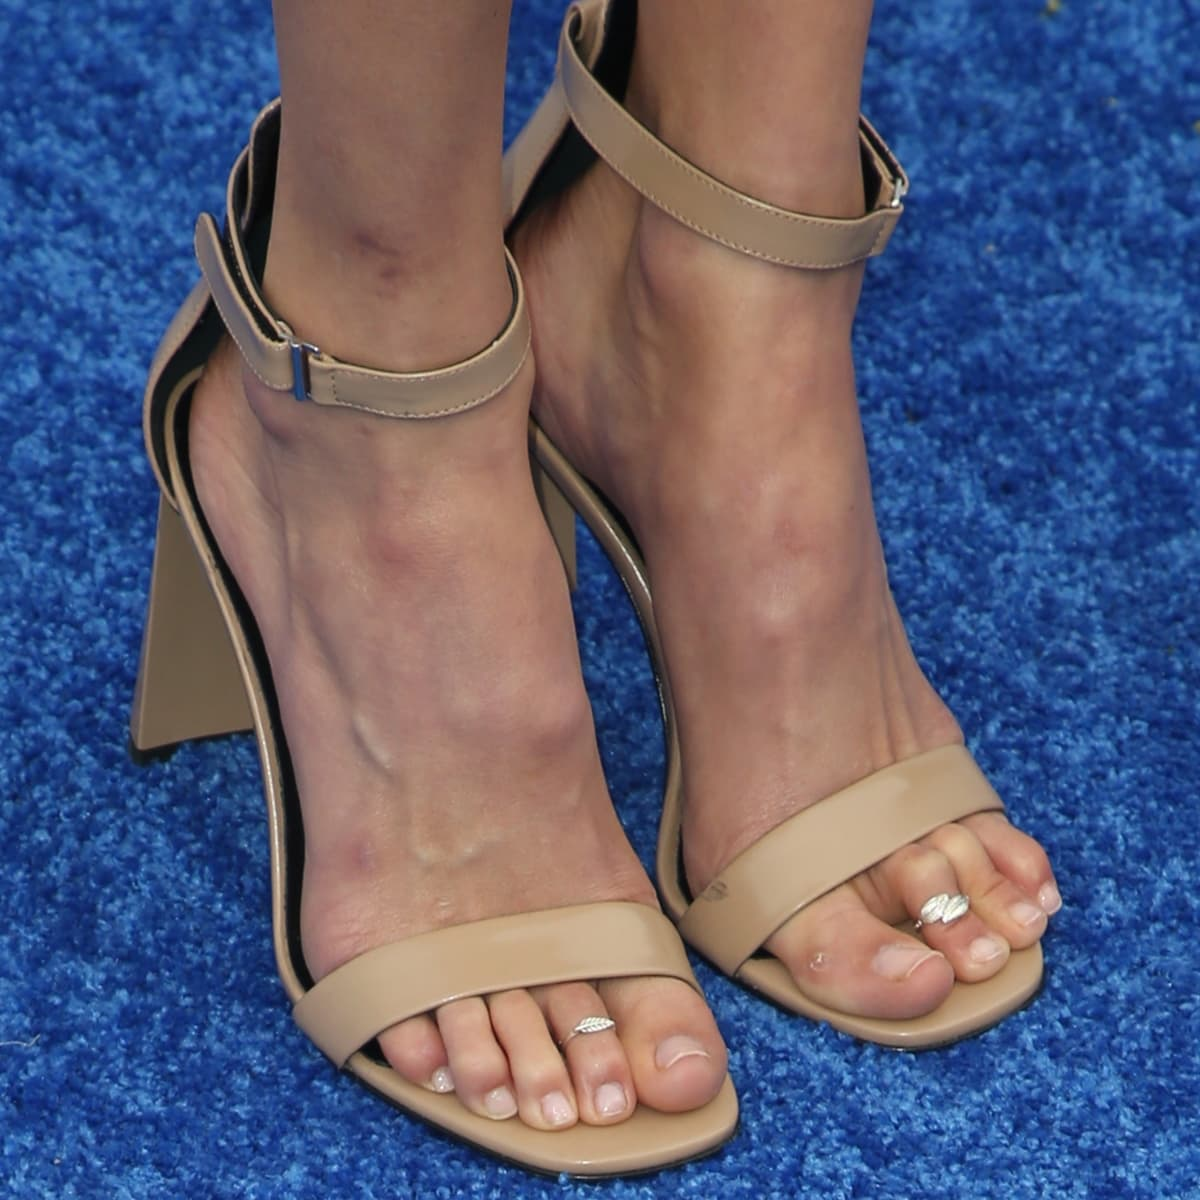 Isabel Lucas shows off her size 7 (US) feet in Via Spiga Faxon sandals